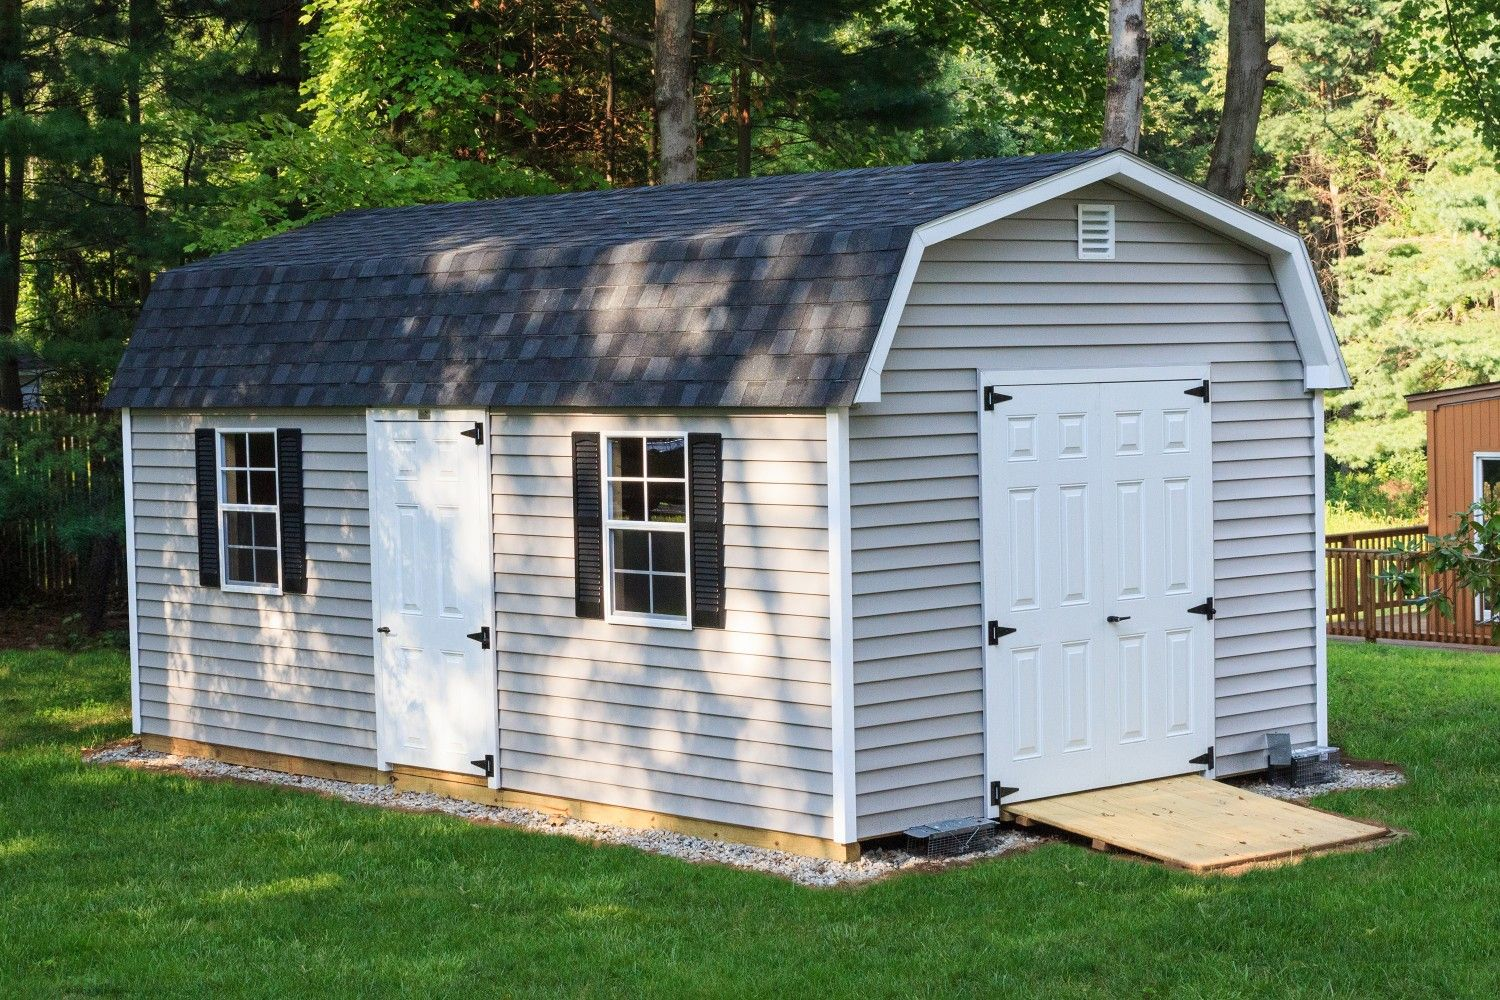 12 X 20 Dutch Vinyl Mini Barn Pool Houses Shed